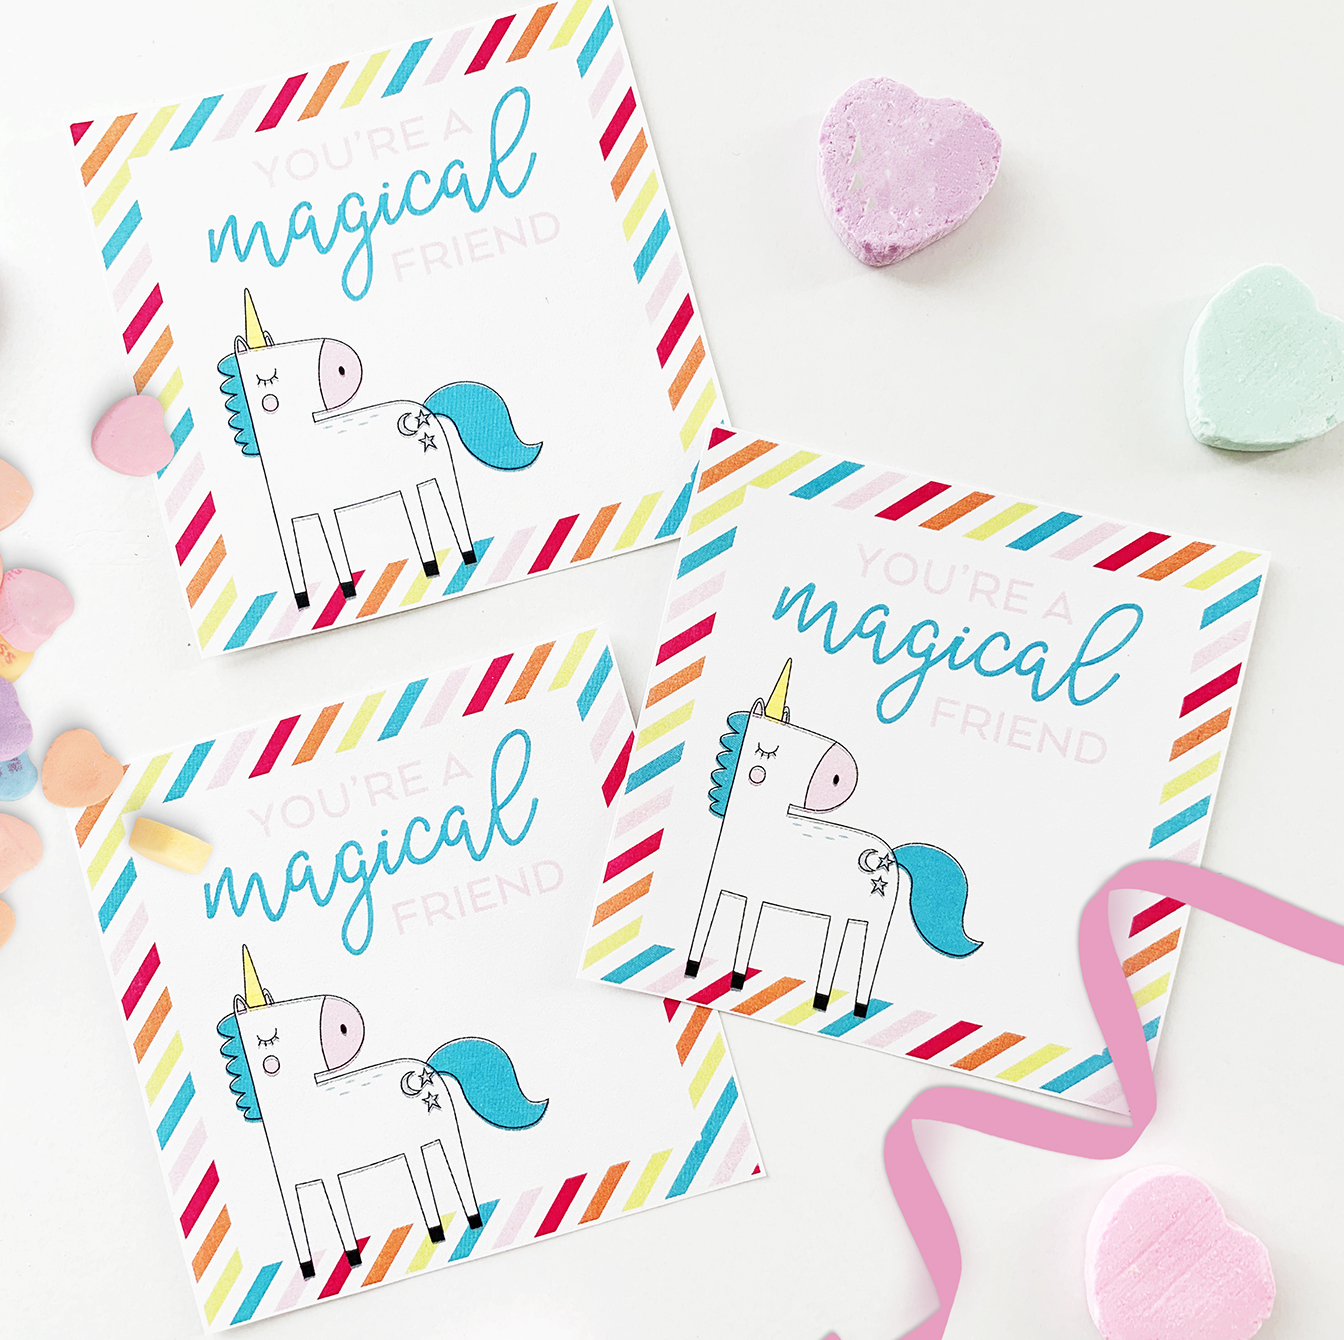 picture relating to Free Unicorn Printable called Totally free Unicorn Printable Valentine Playing cards - Pineapple Paper Co.